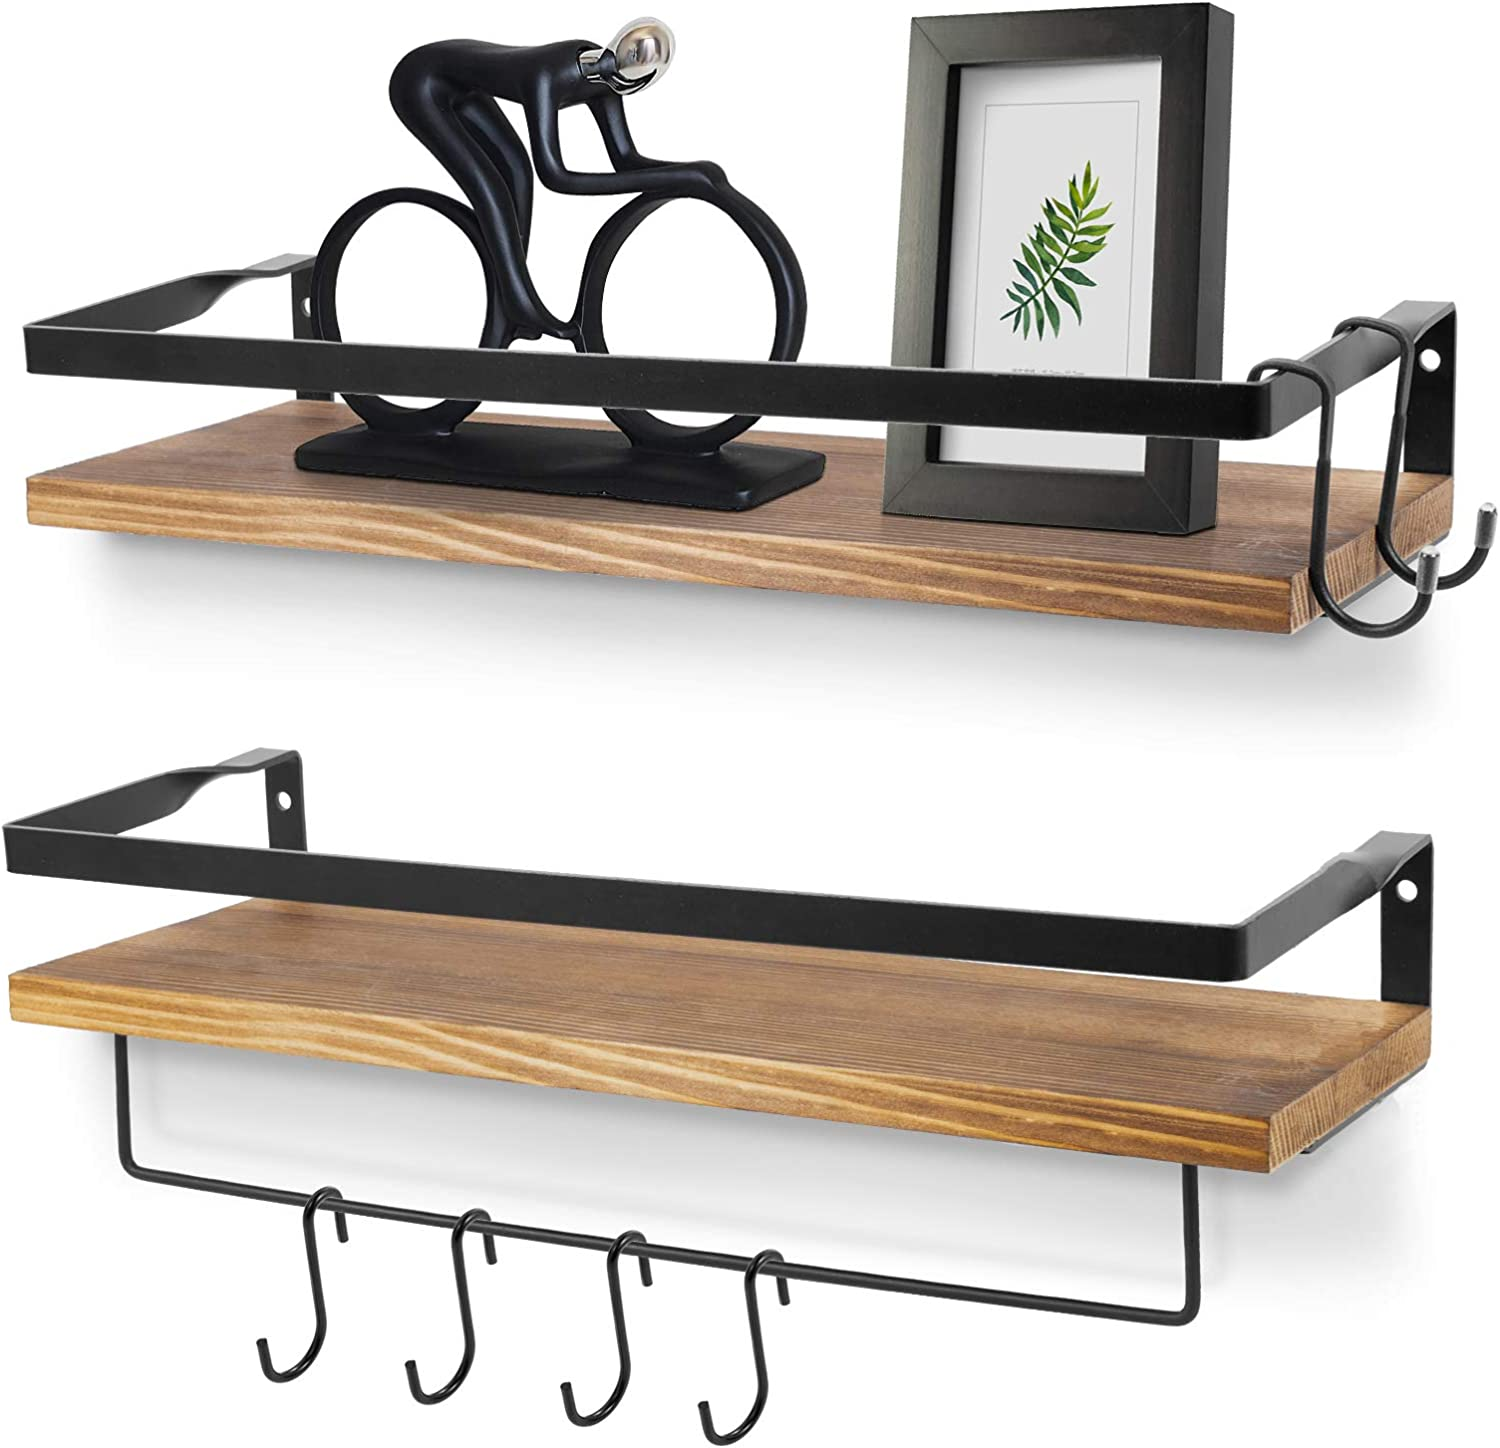 Floating Shelves Cheap mail Excellence order sales Wall Mounted Rustic H 5 Wood with